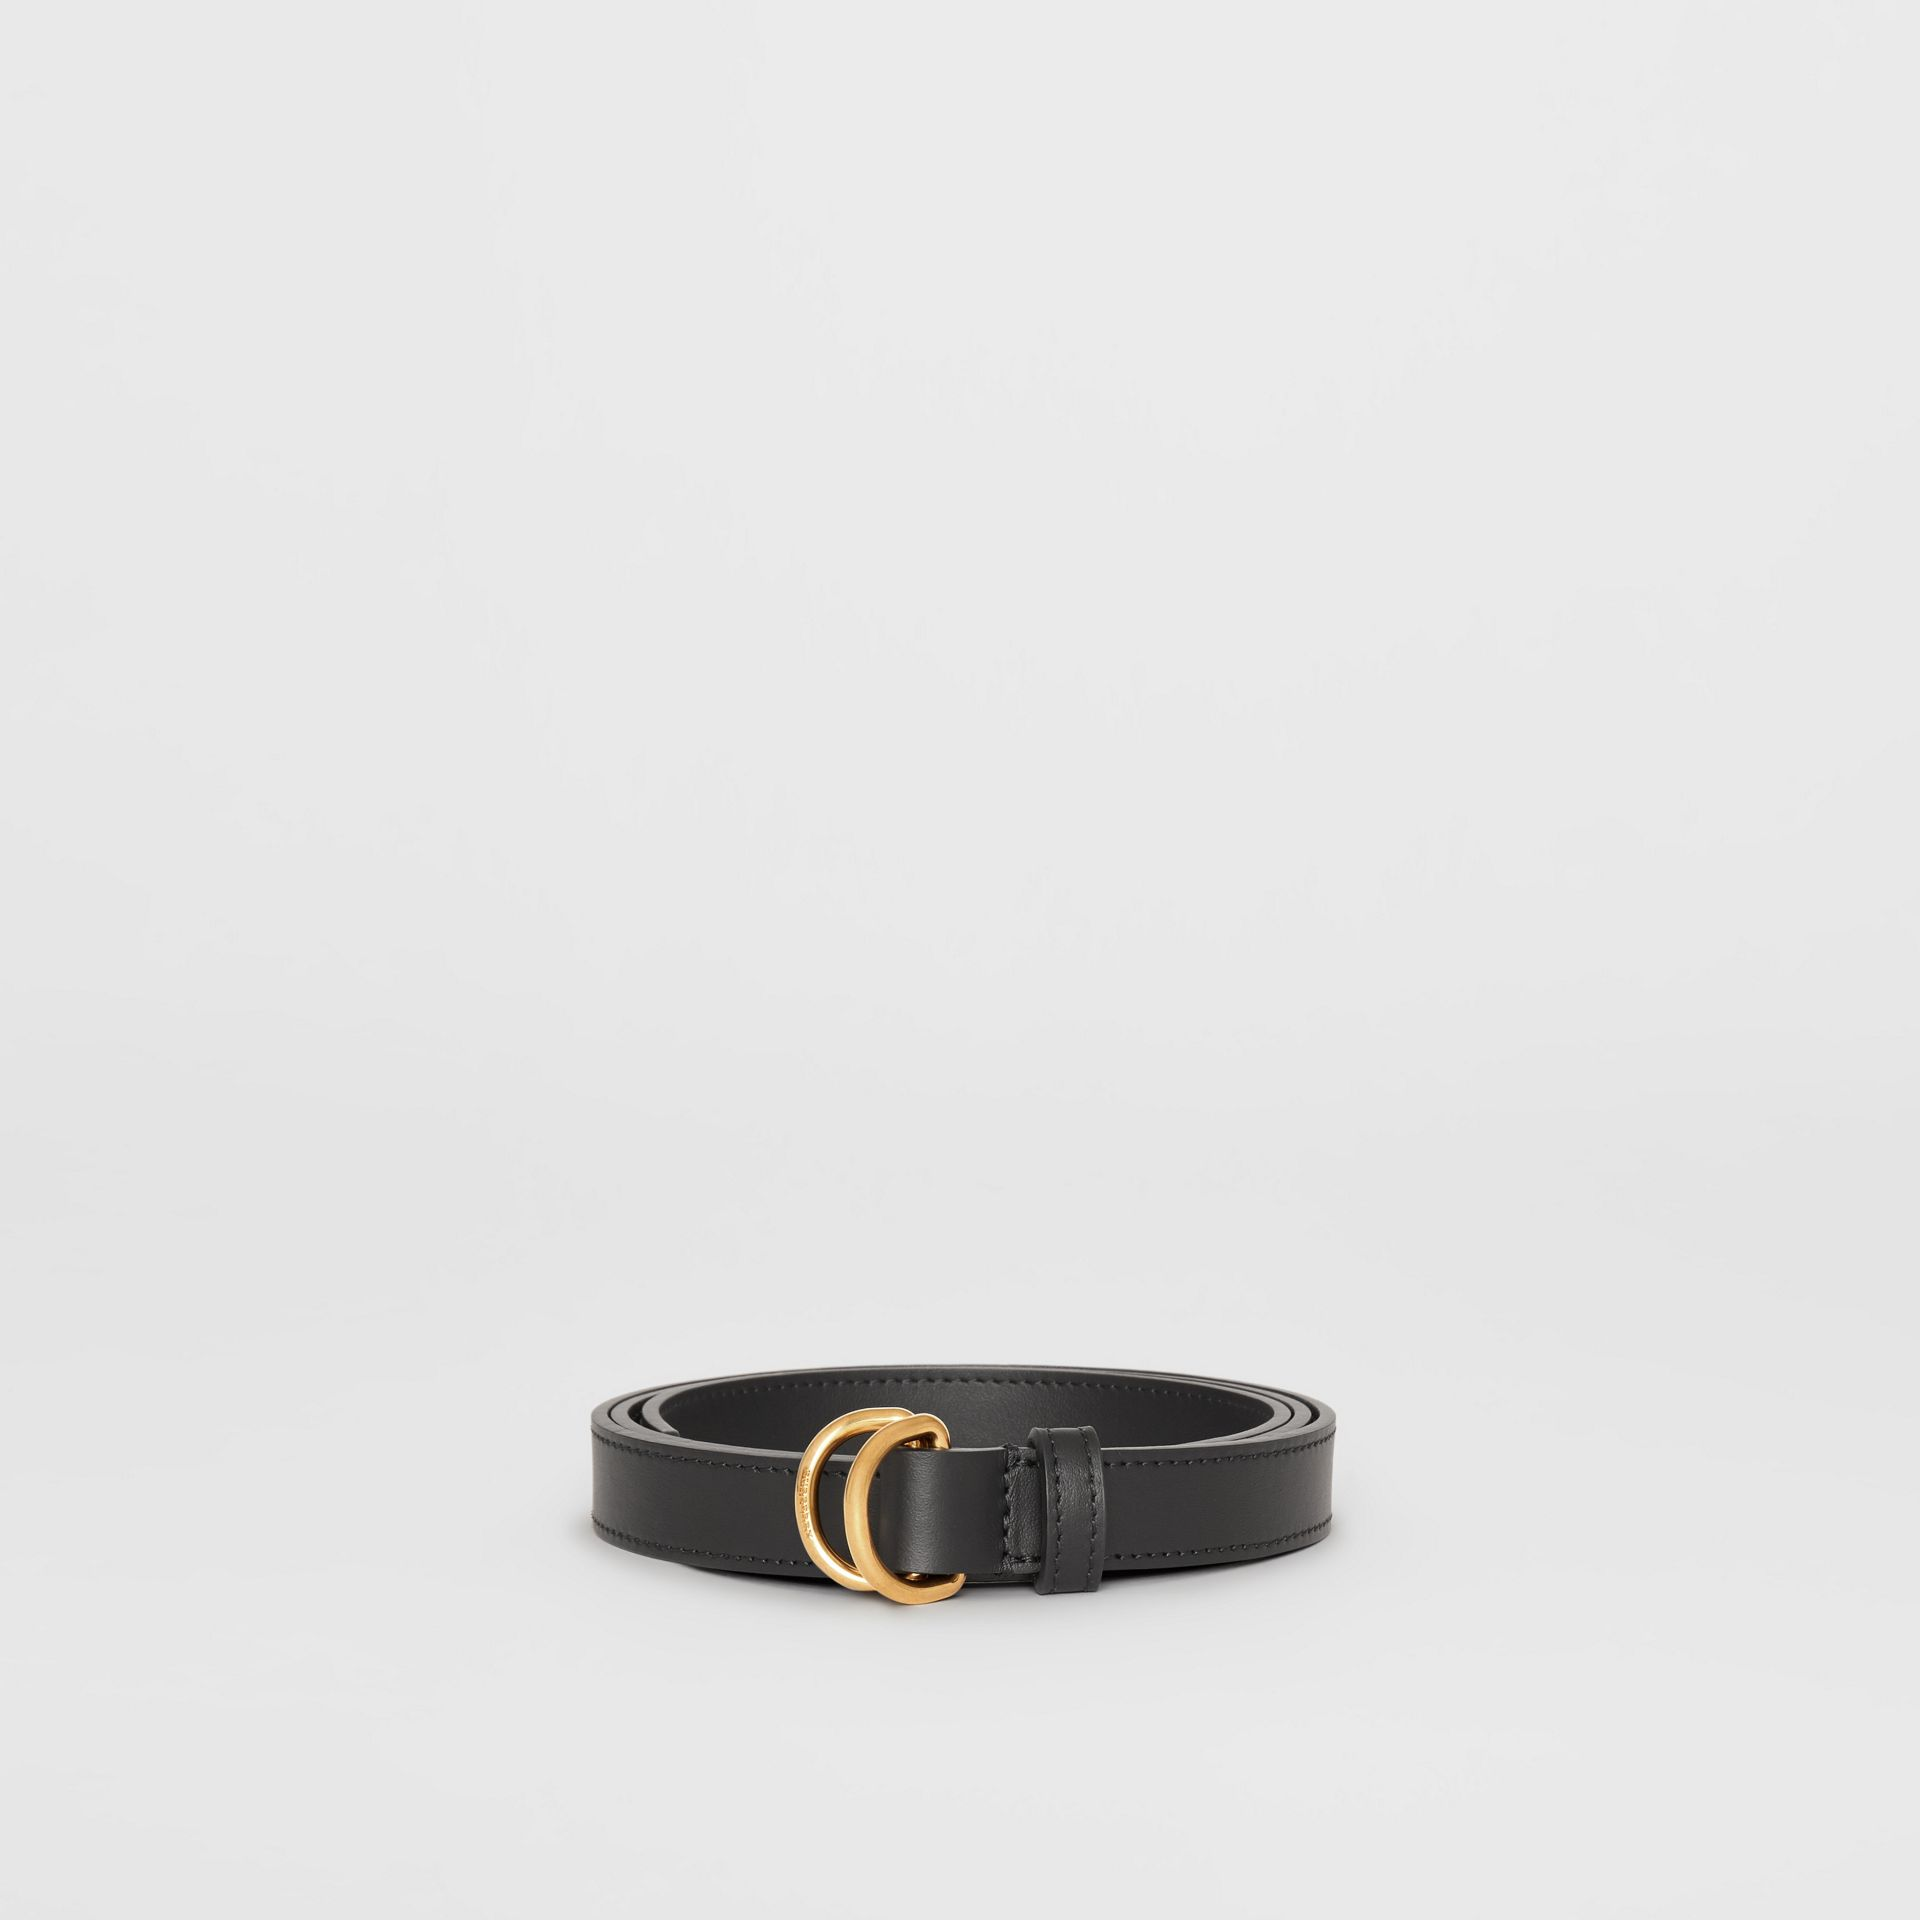 Slim Leather Double D-ring Belt in Black - Women | Burberry - gallery image 3